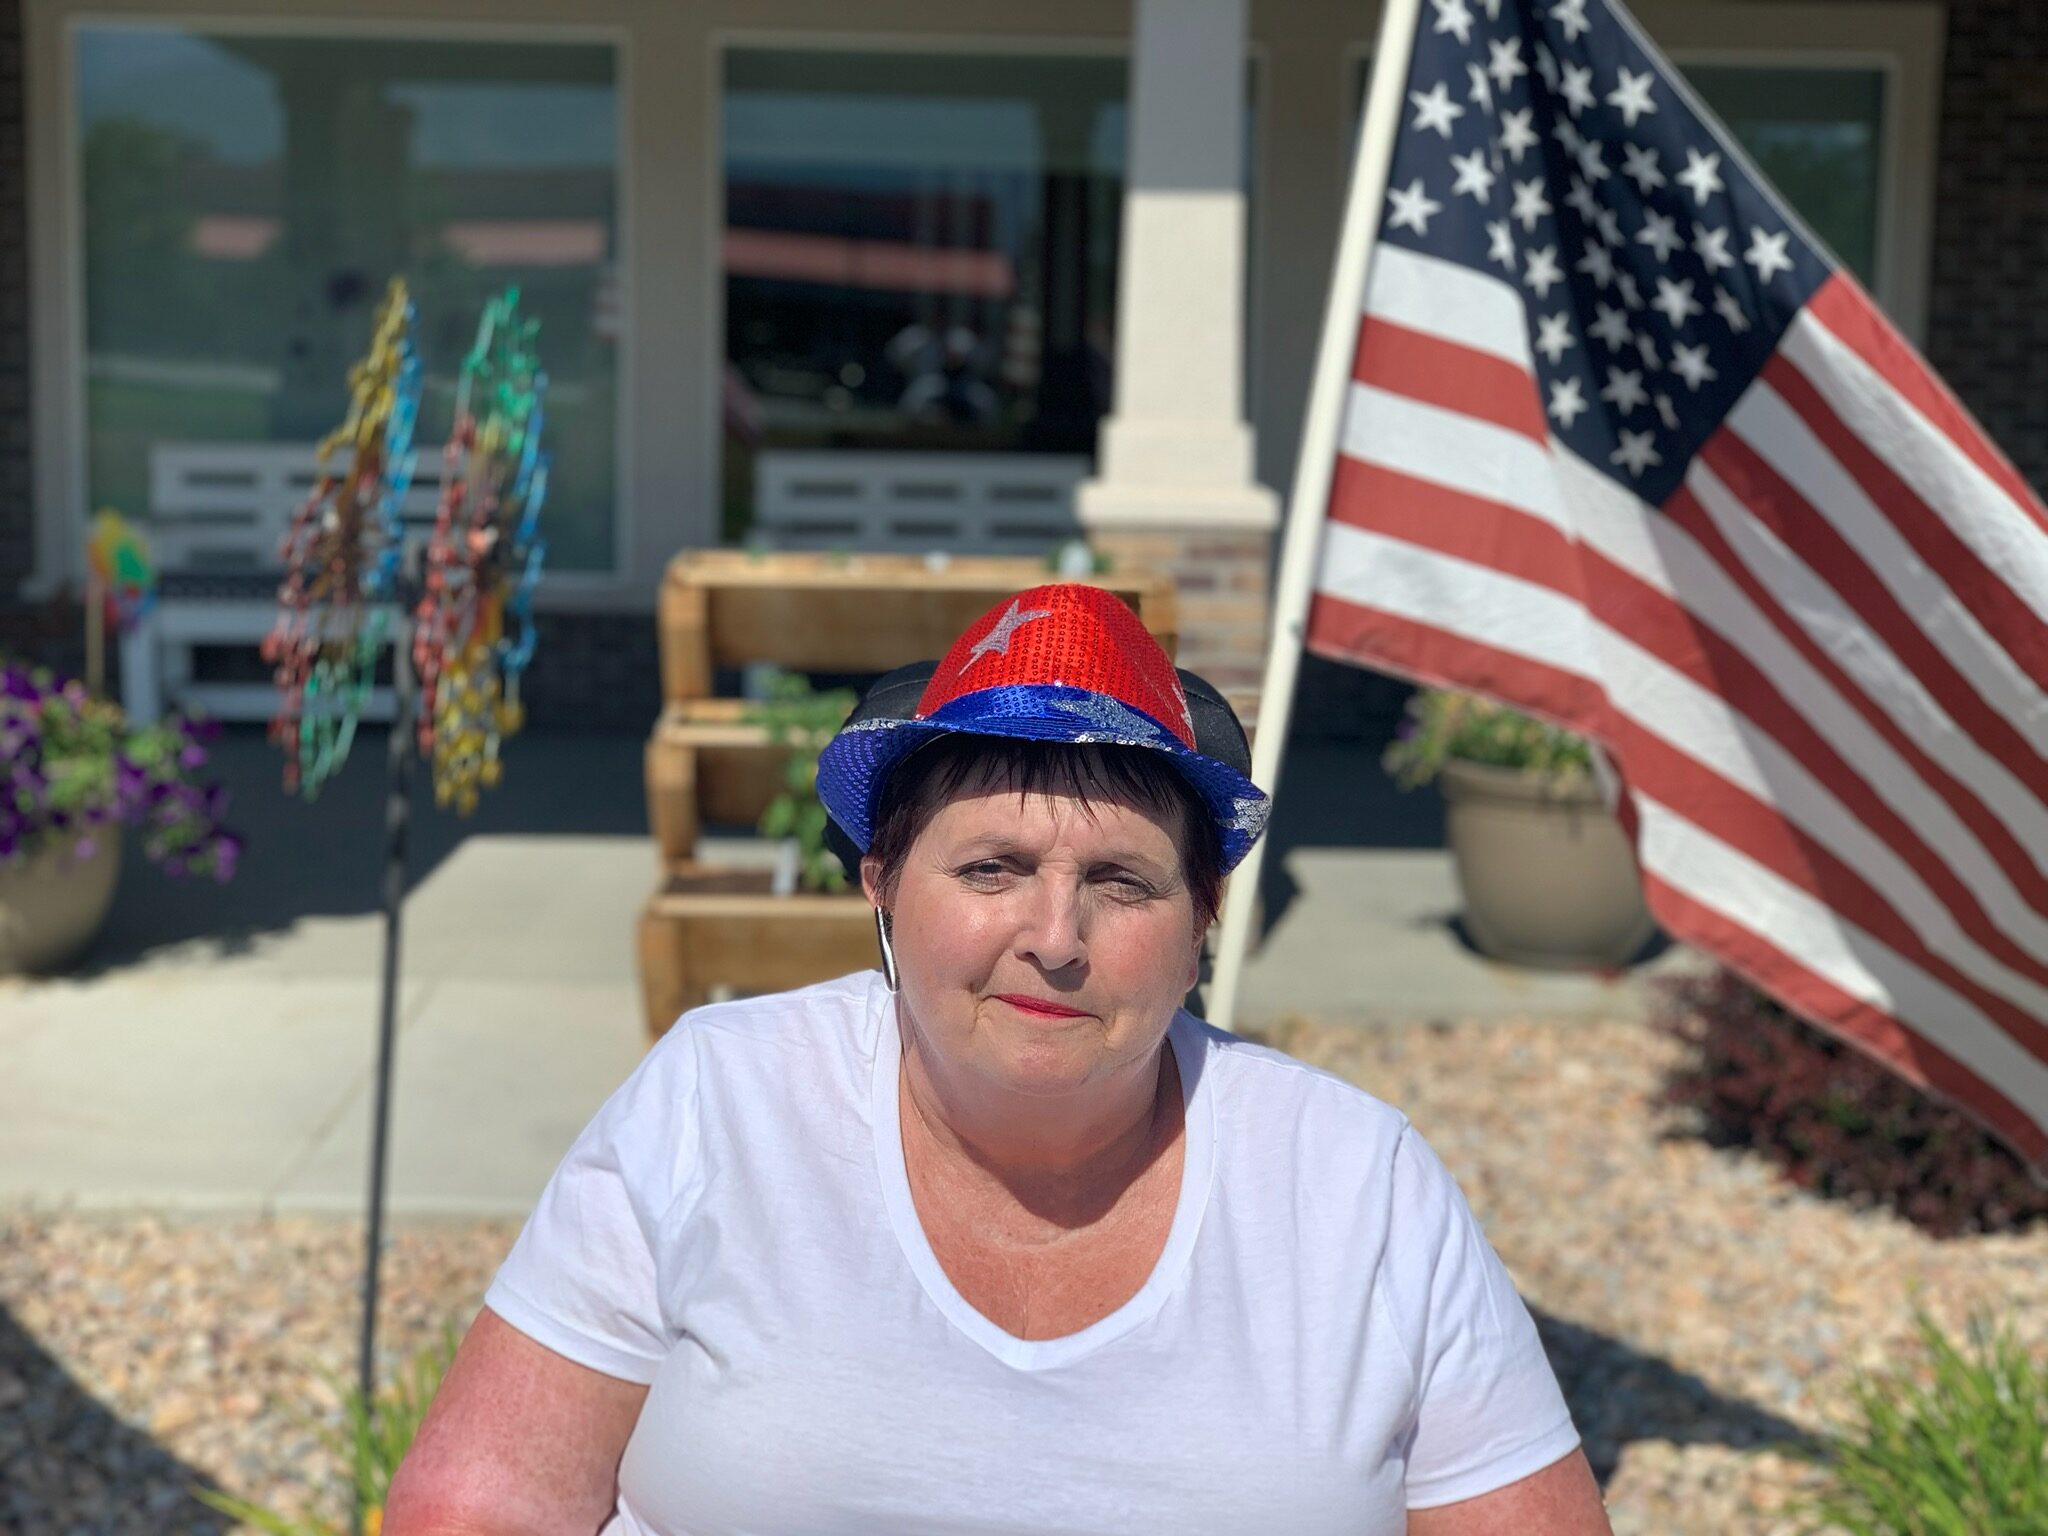 Photo of Donna McCormick with American Flag in the background